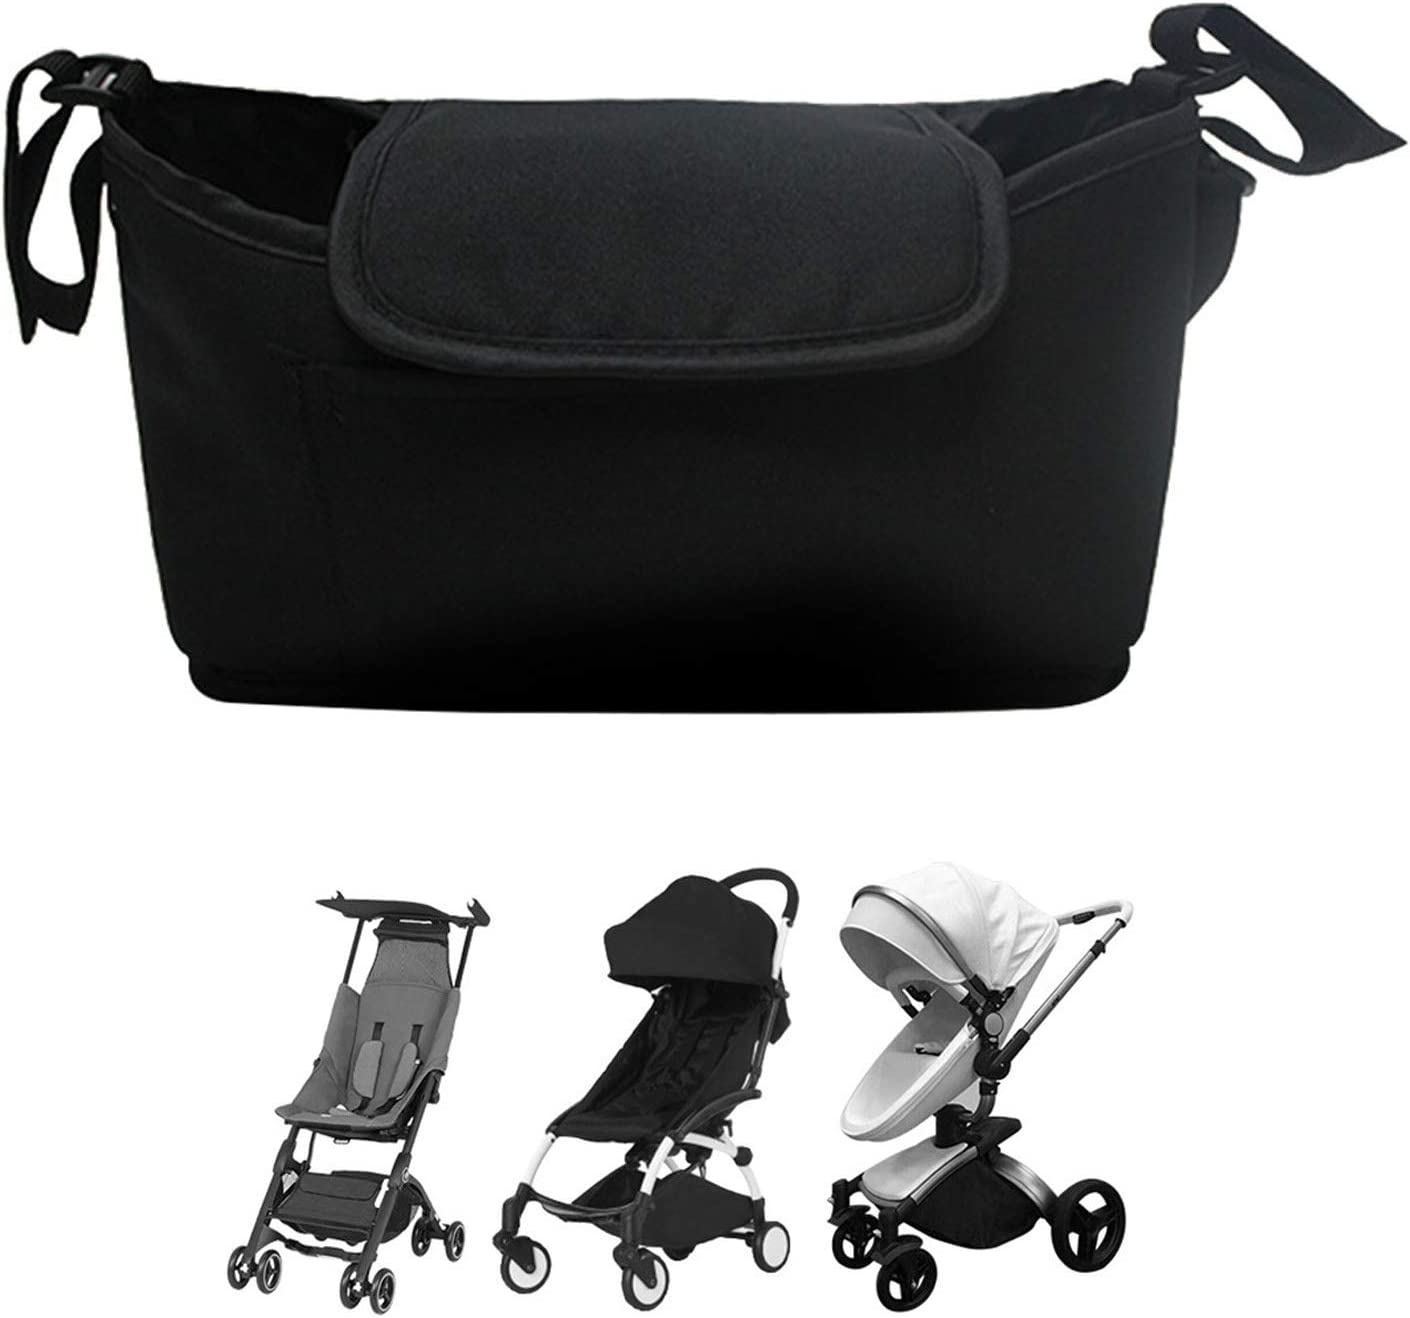 Non Slip Baby Stroller Organizer Bag with Cup Holder for Mom, Universal Fit for Uppababy Vista Cruz Nuna Baby Jogger Bob Baby Stroller and Stroller Accessories for Baby Boy Girl